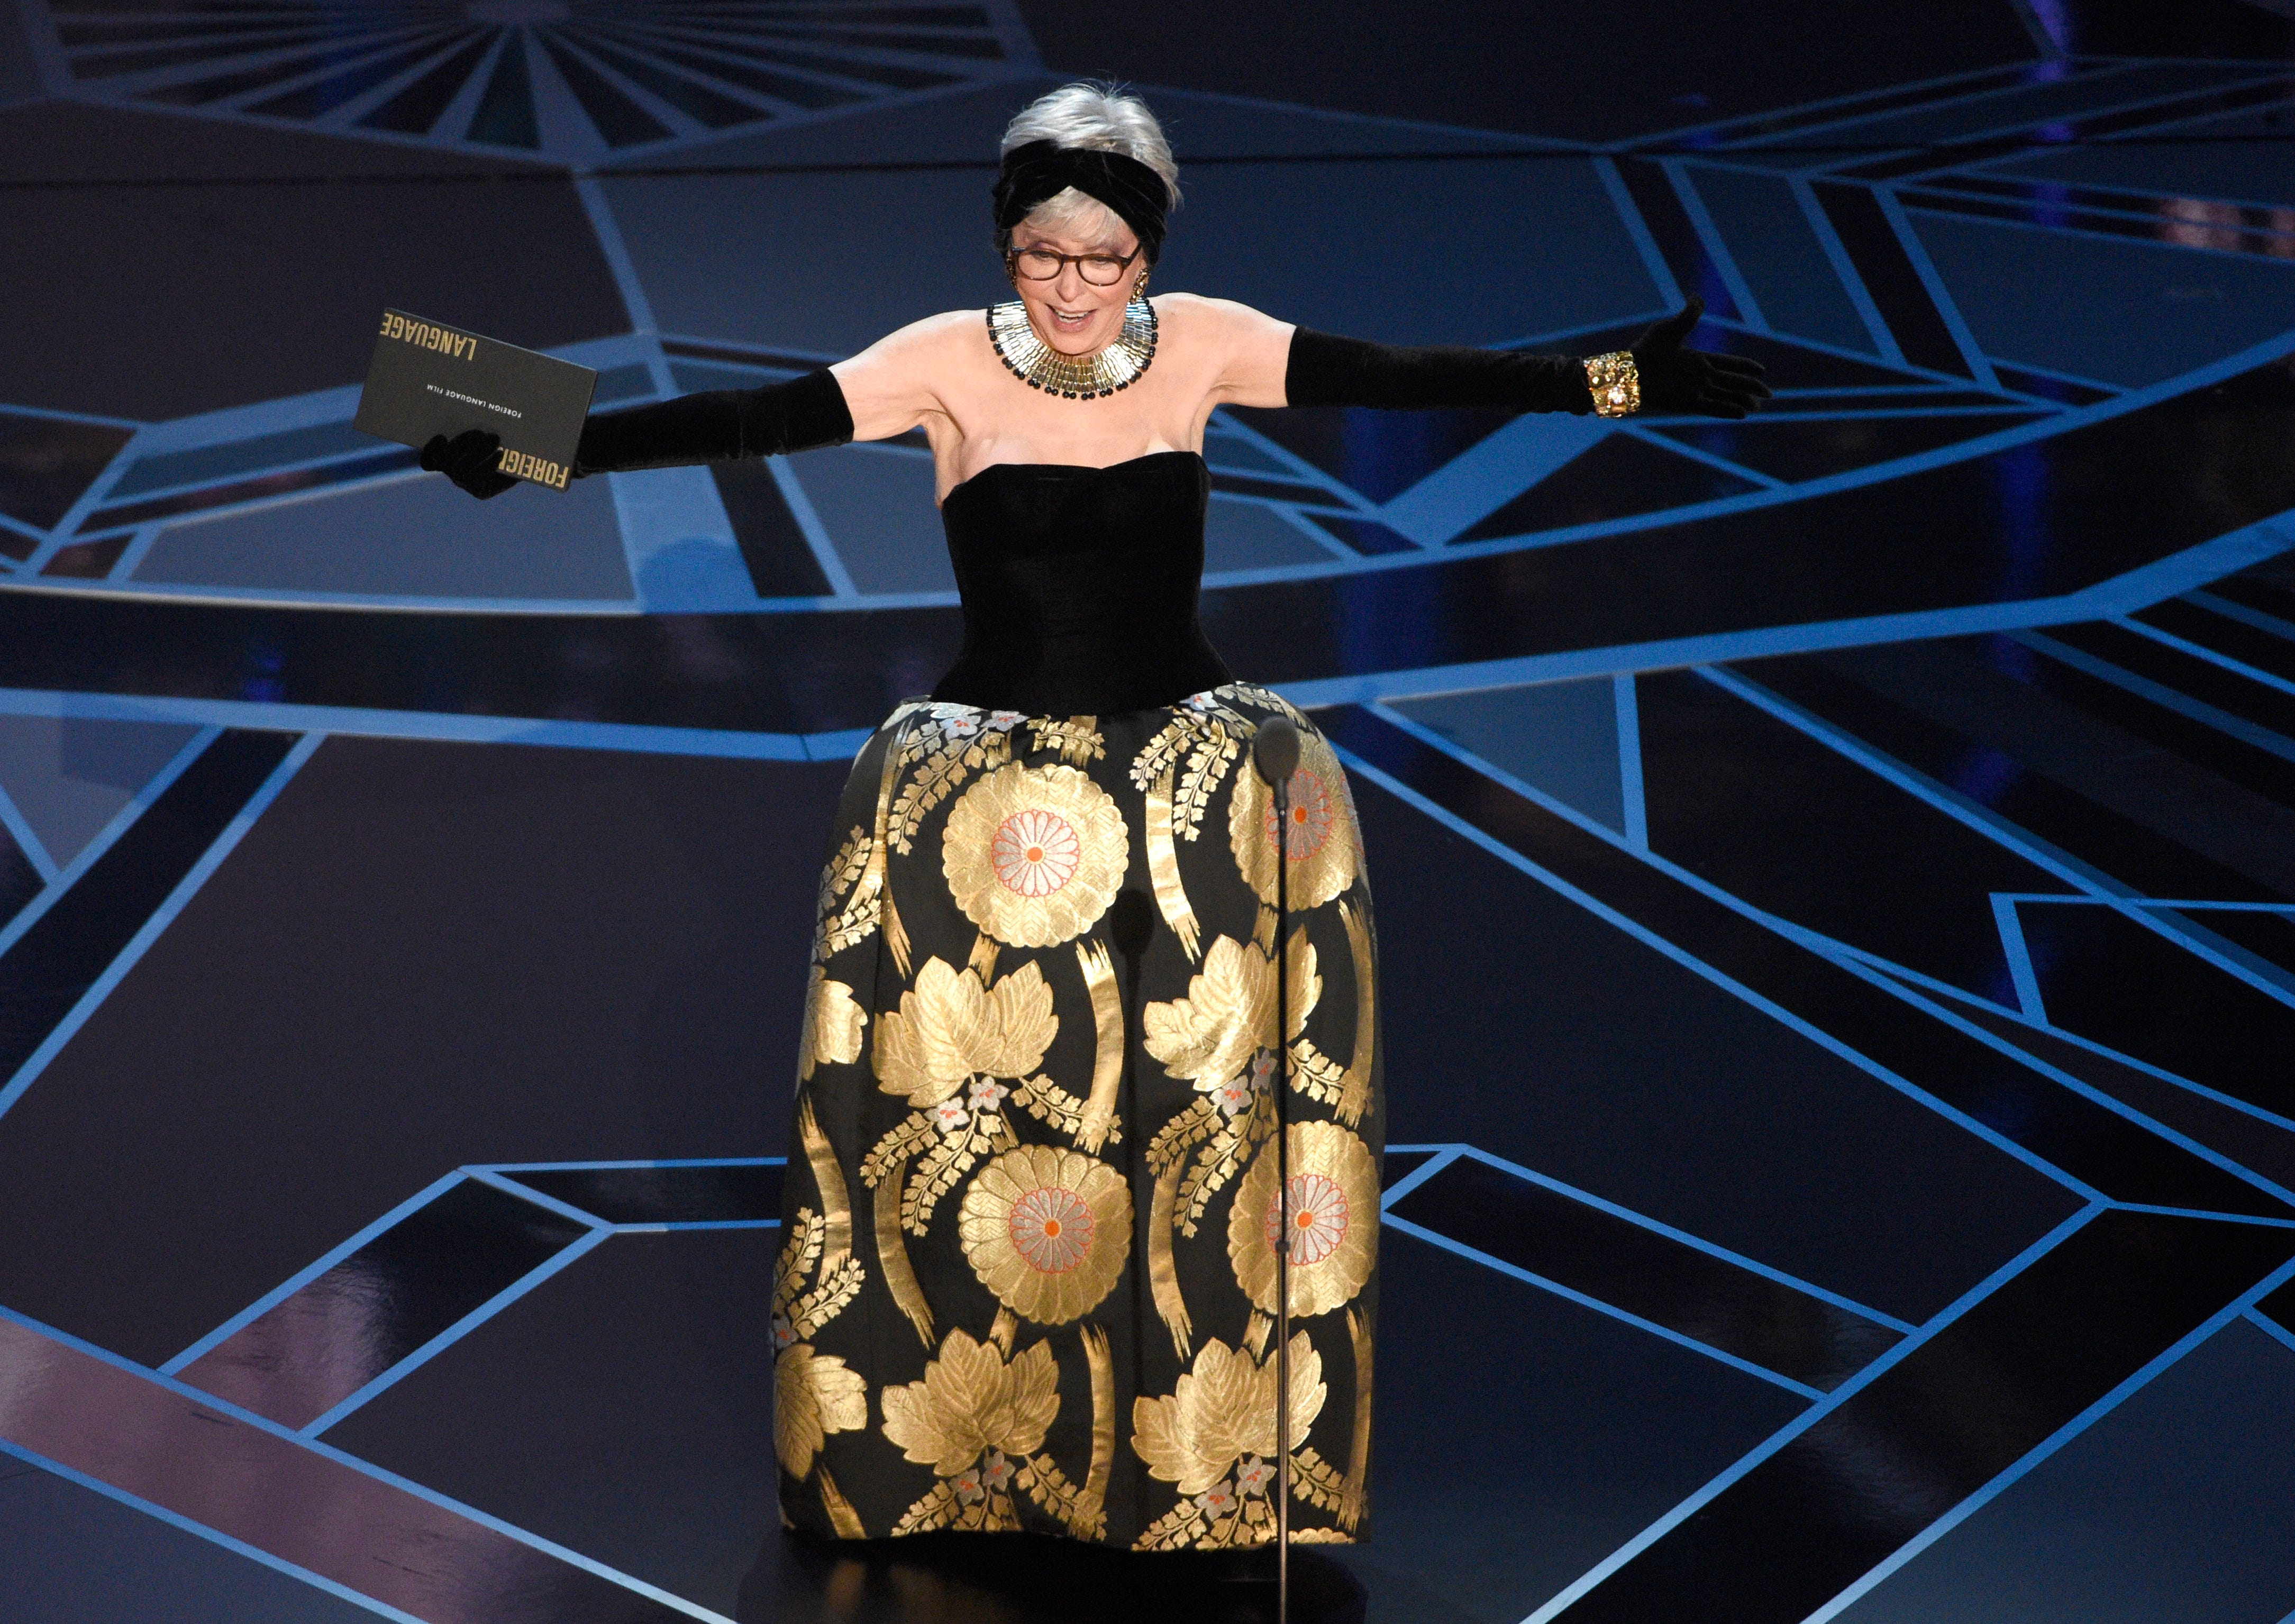 Rita Moreno presents the award for best foreign language film at the Oscars in 2018.